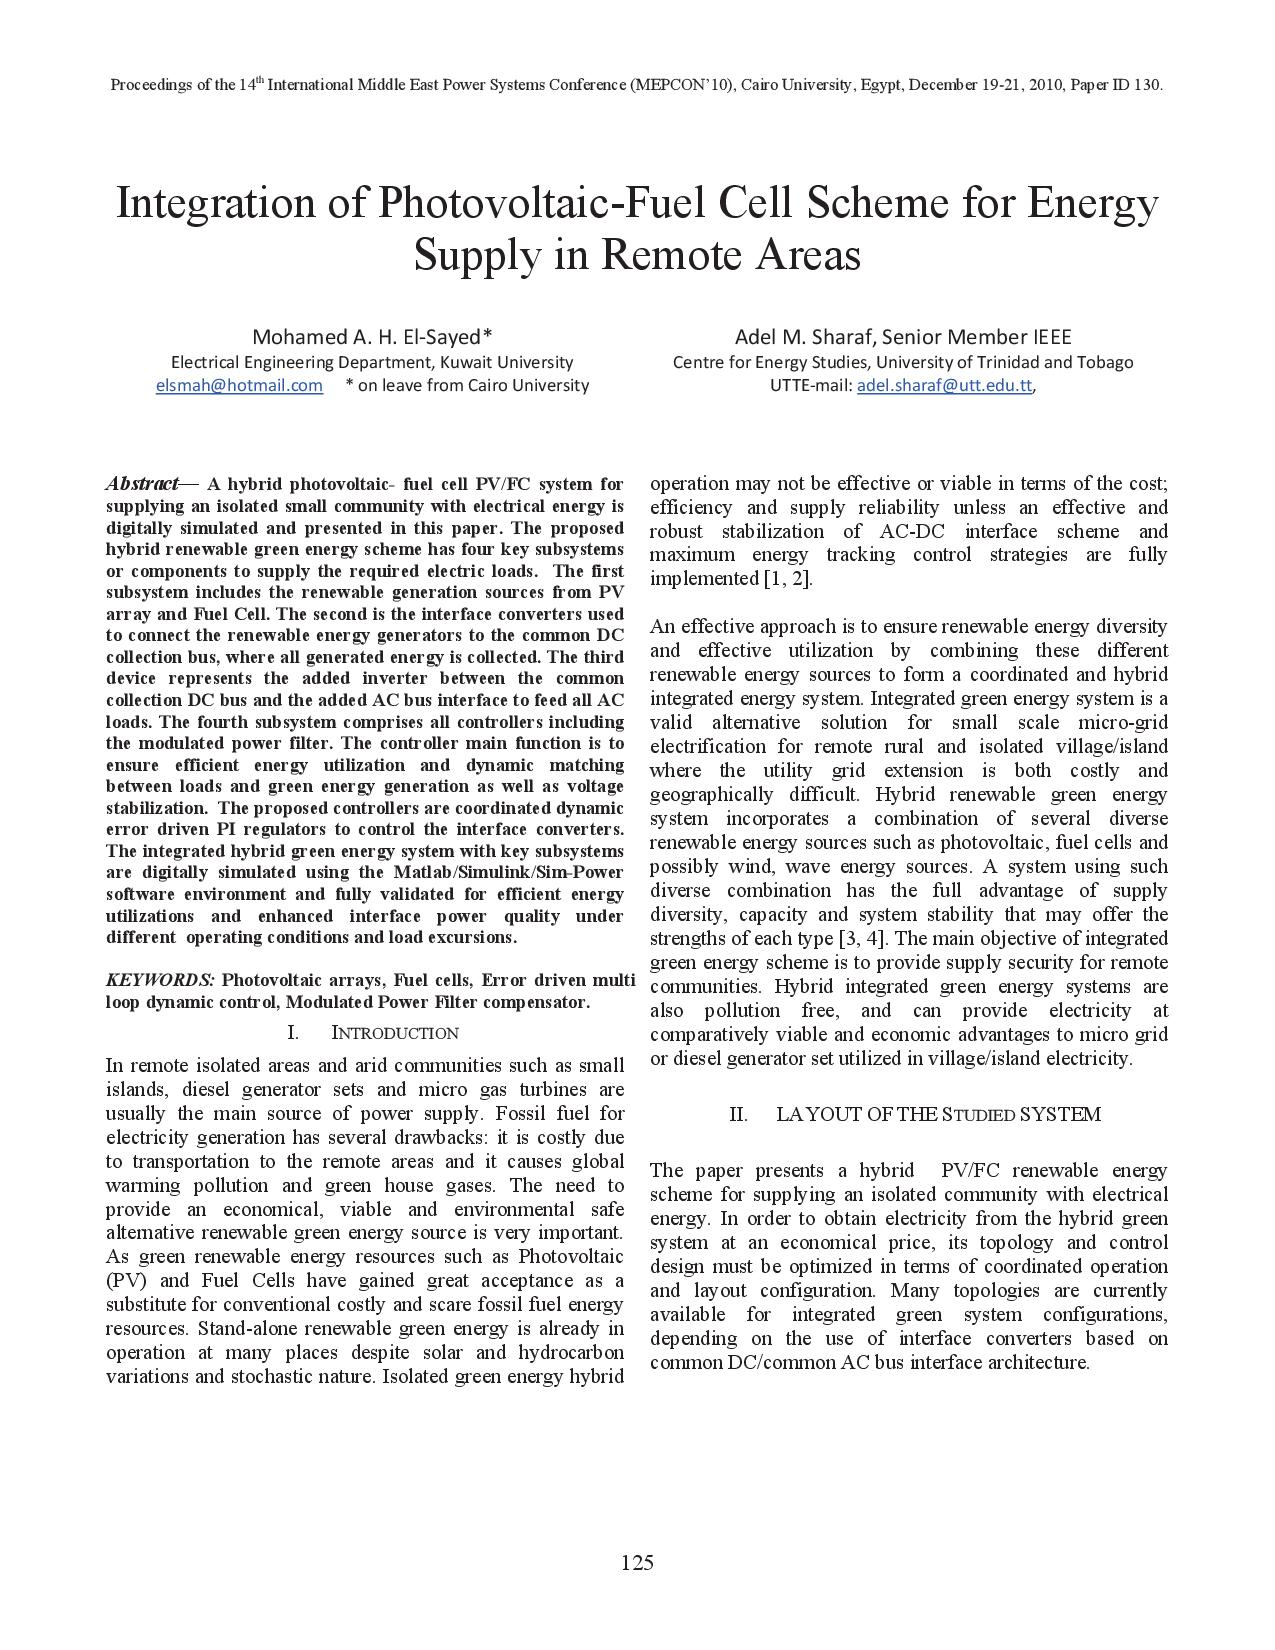 Integration of Photovoltaic-Fuel Cell Scheme for Energy Supply in Remote Areas